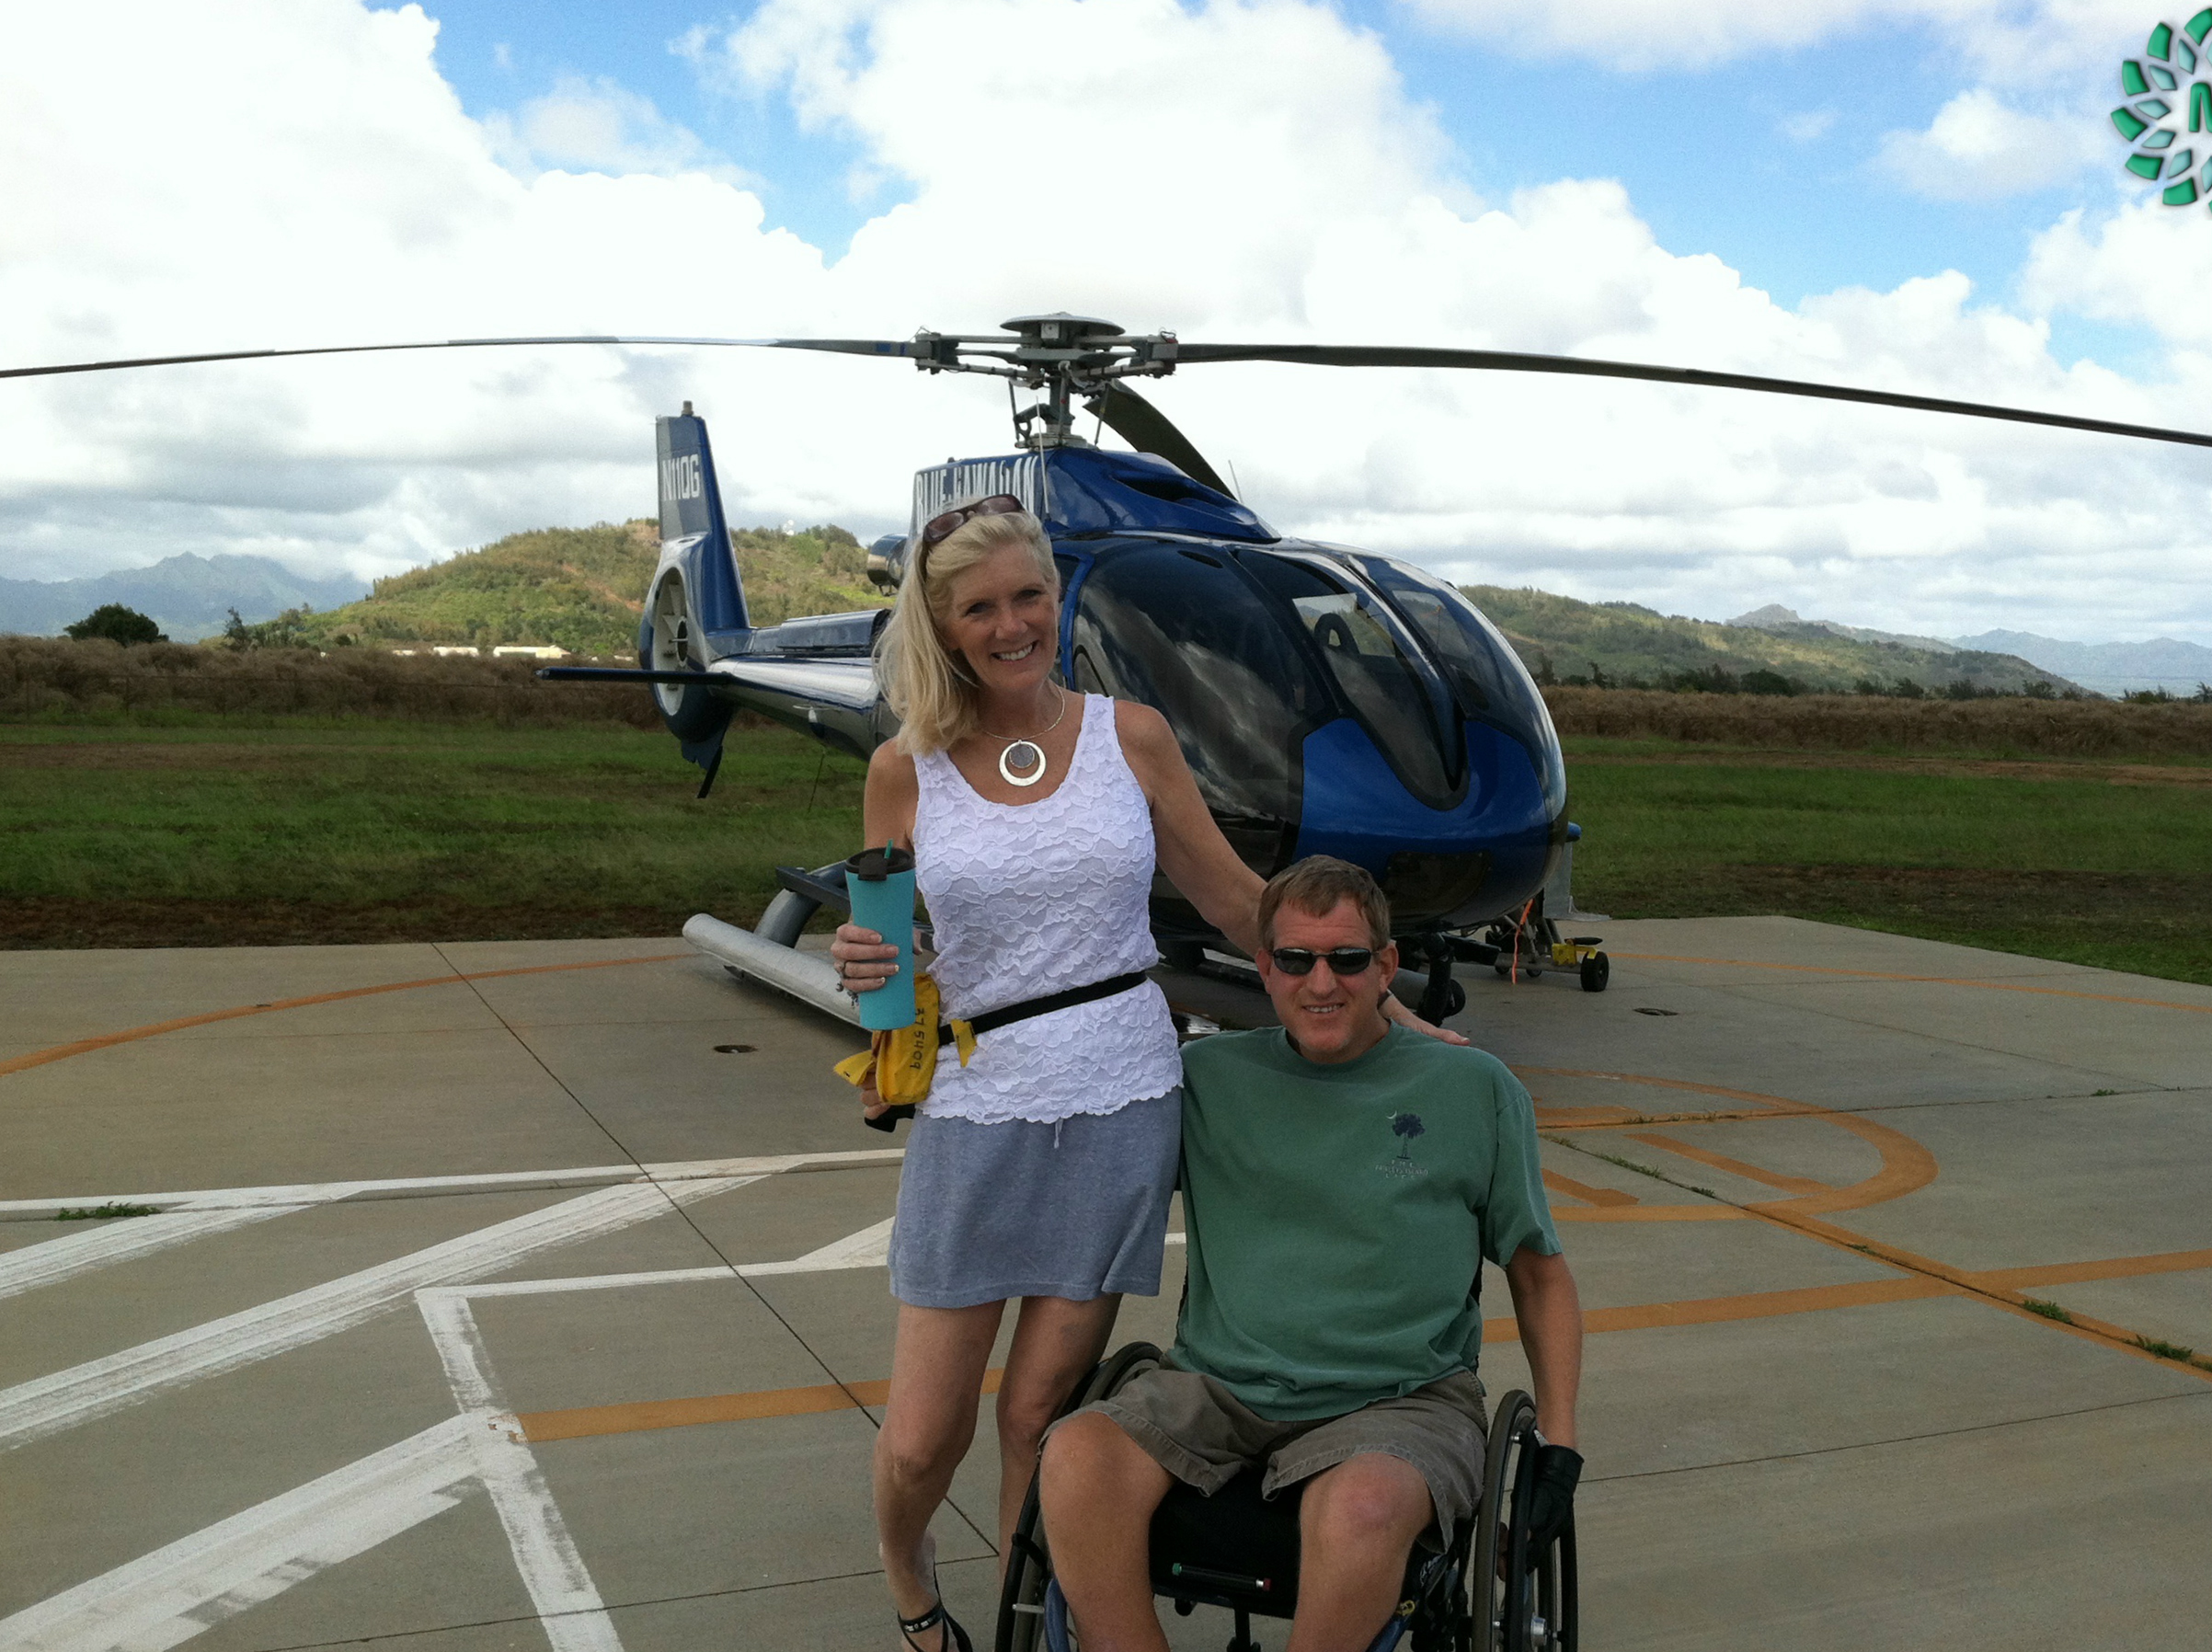 Touring Hawaii by helicopter